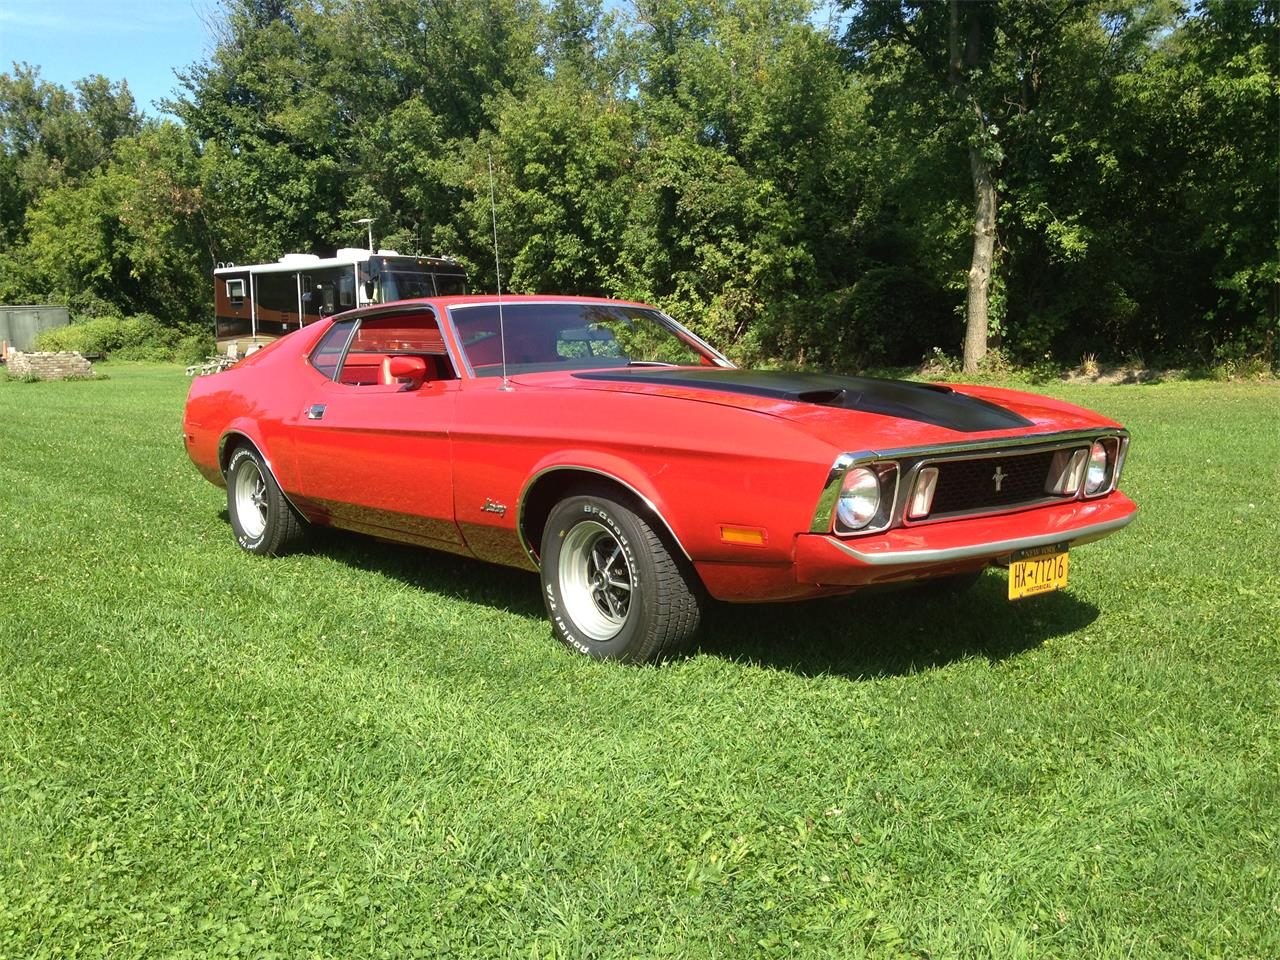 Large picture of 73 mustang mach 1 m0pp